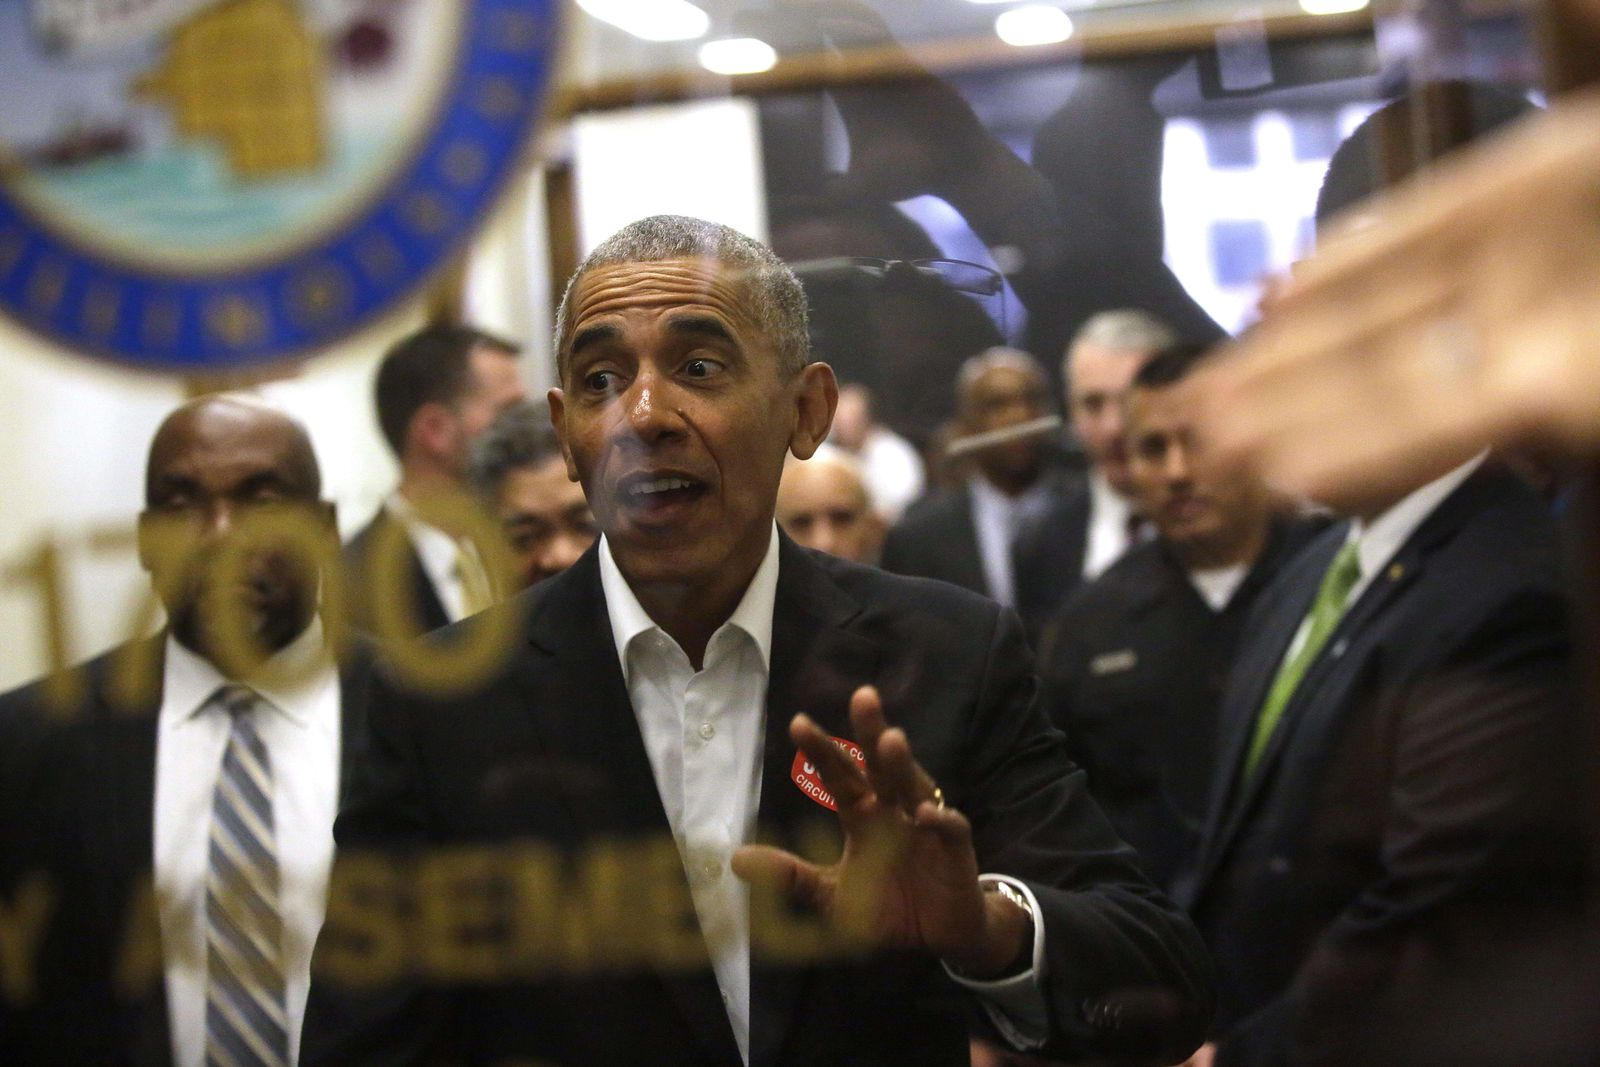 US-FORMER-PRESIDENT-OBAMA-REPORTS-FOR-JURY-DUTY-IN-CHICAGO